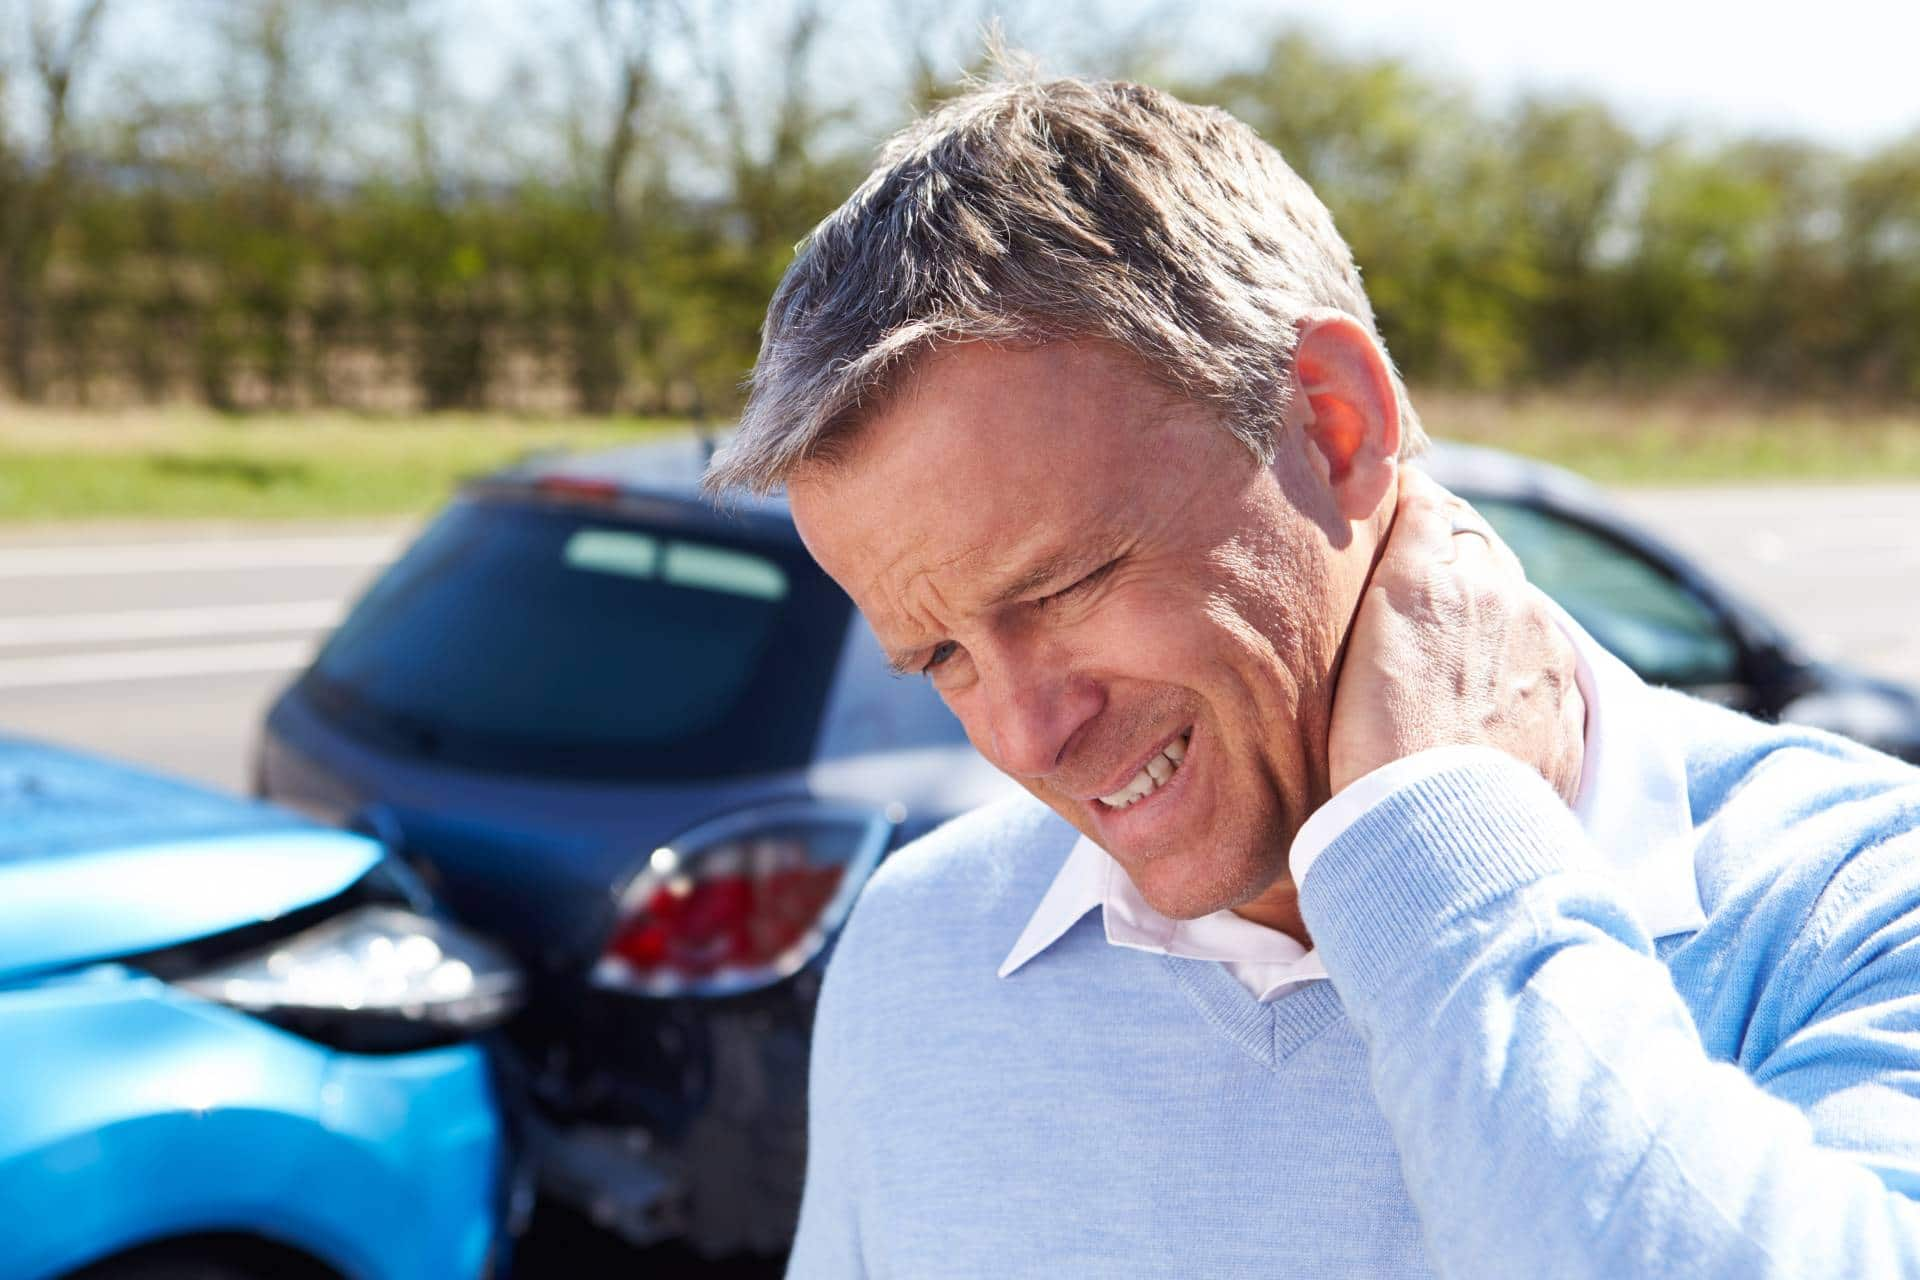 Injured in a car accident? Schedule a free consultation with our personal injury lawyers at the Angell Law Firm in Buckhead, Ga